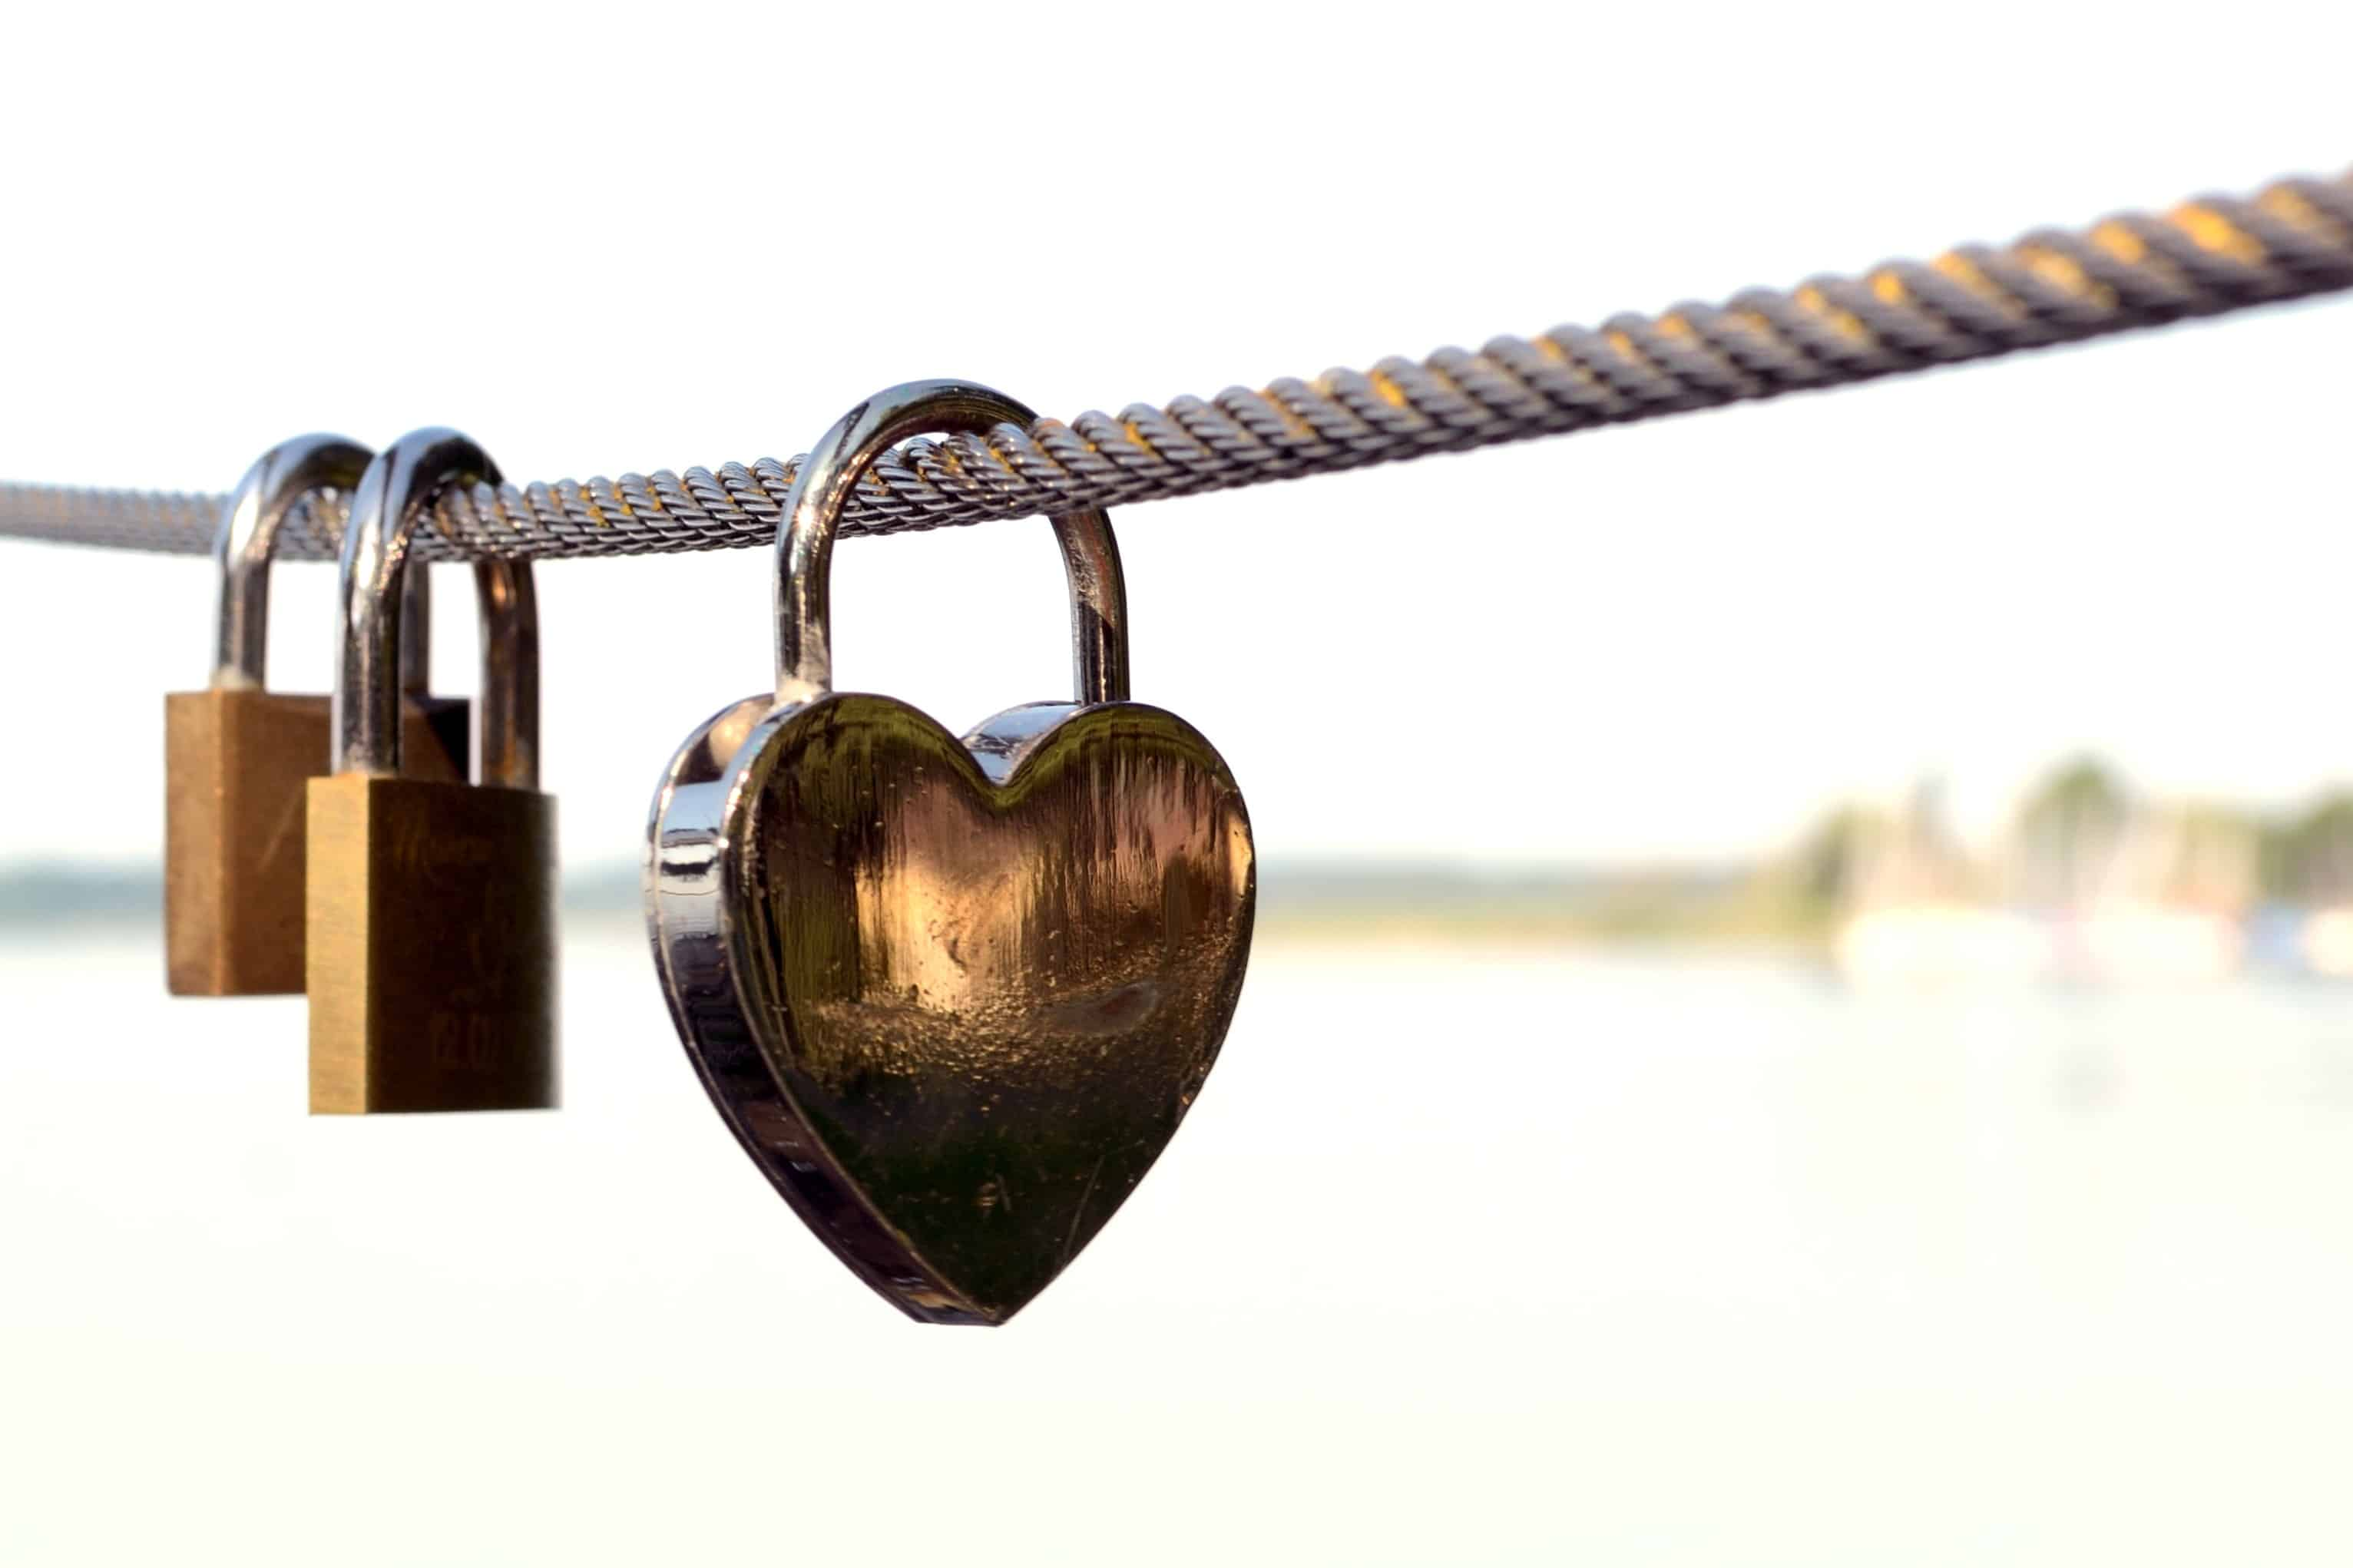 rope with heart locks on it